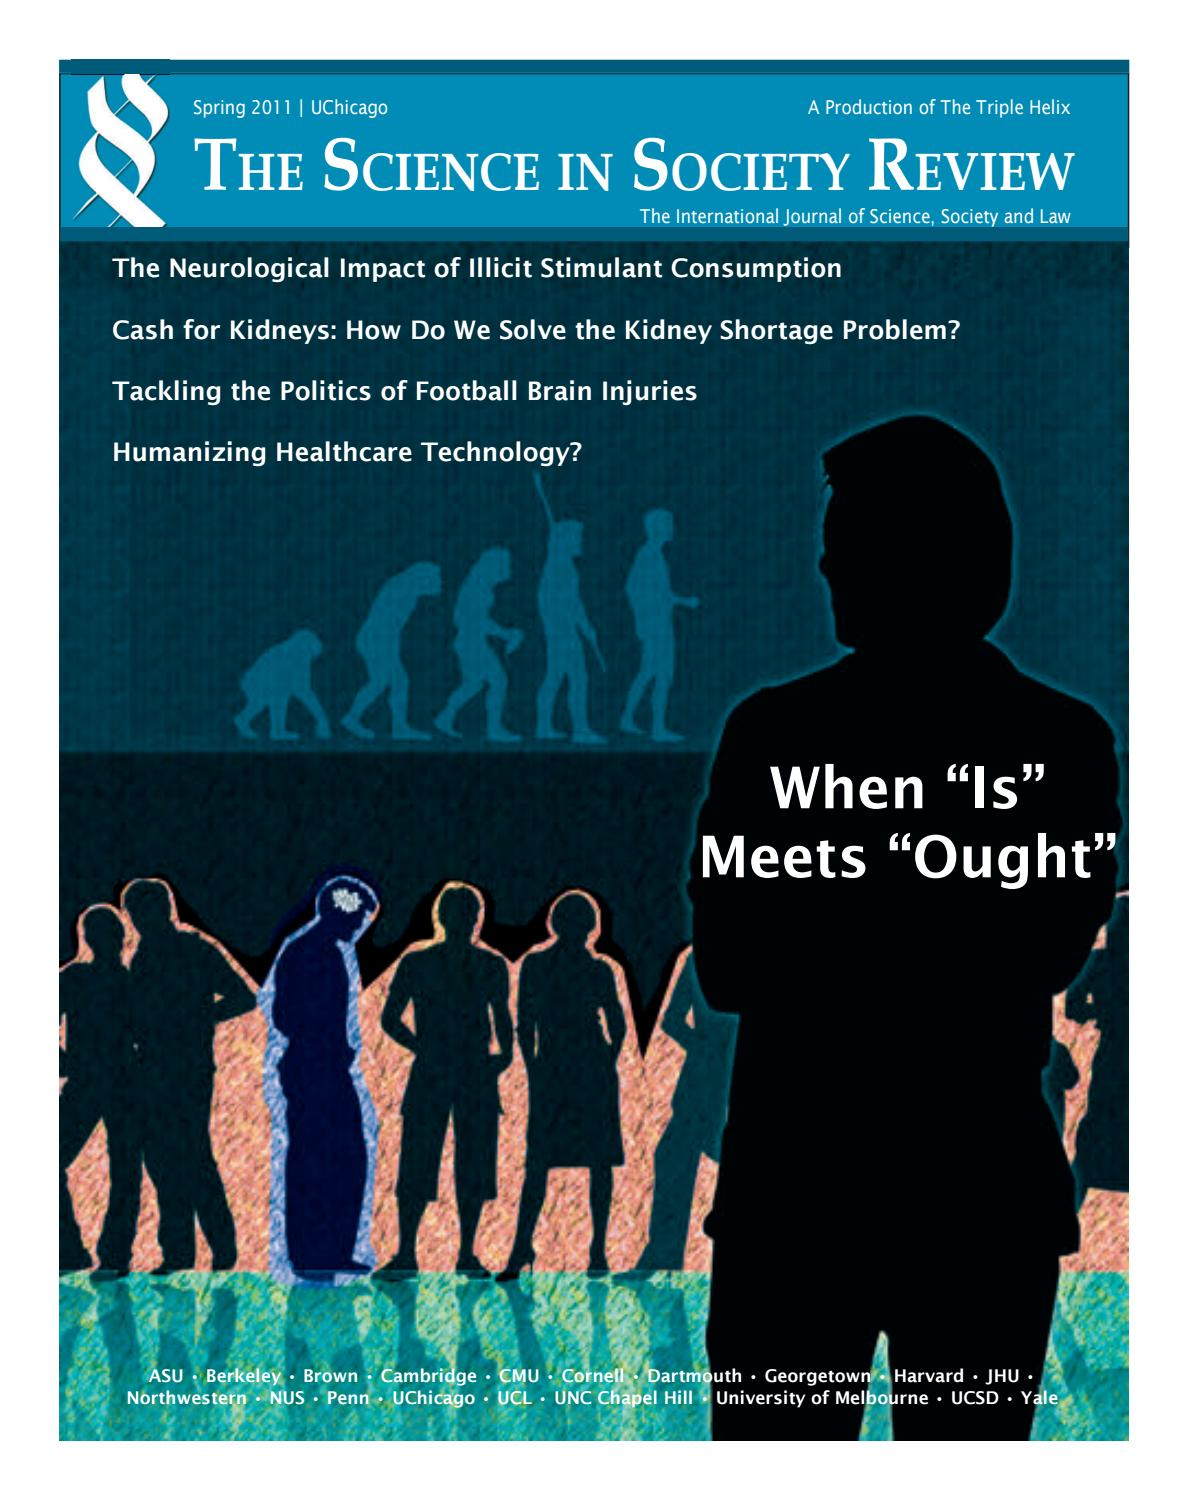 Science in Society Review - Spring 2011 by The Triple Helix